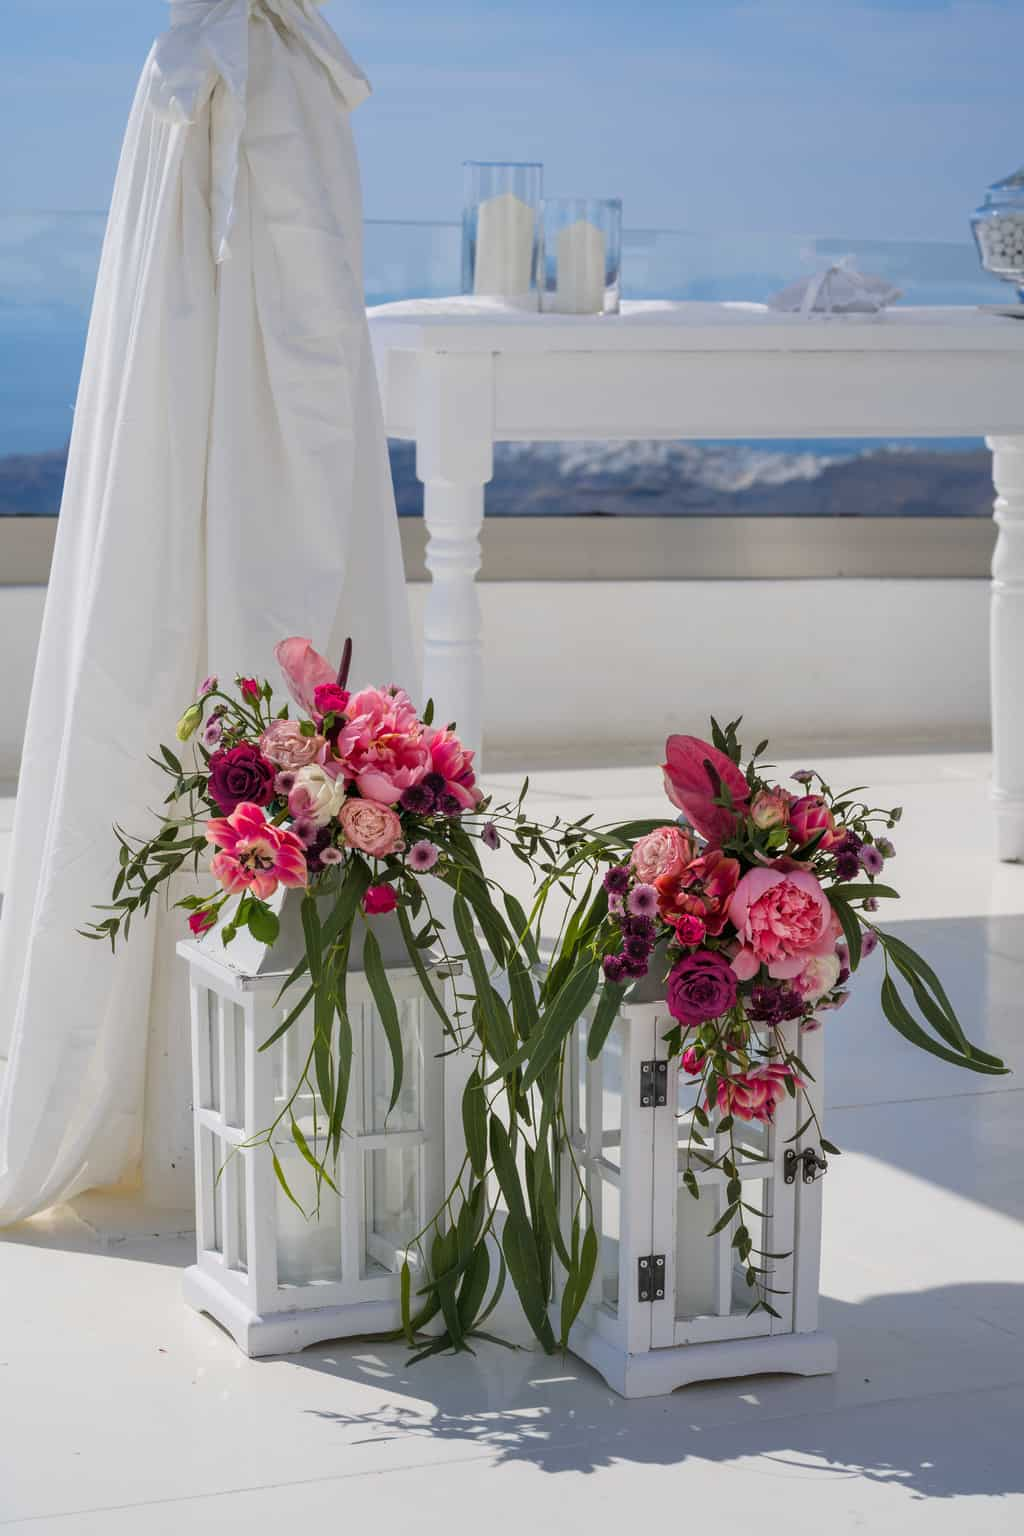 Destination-wedding-grecia-elopment-wedding-fotografia-life-click-studioLFC56of185